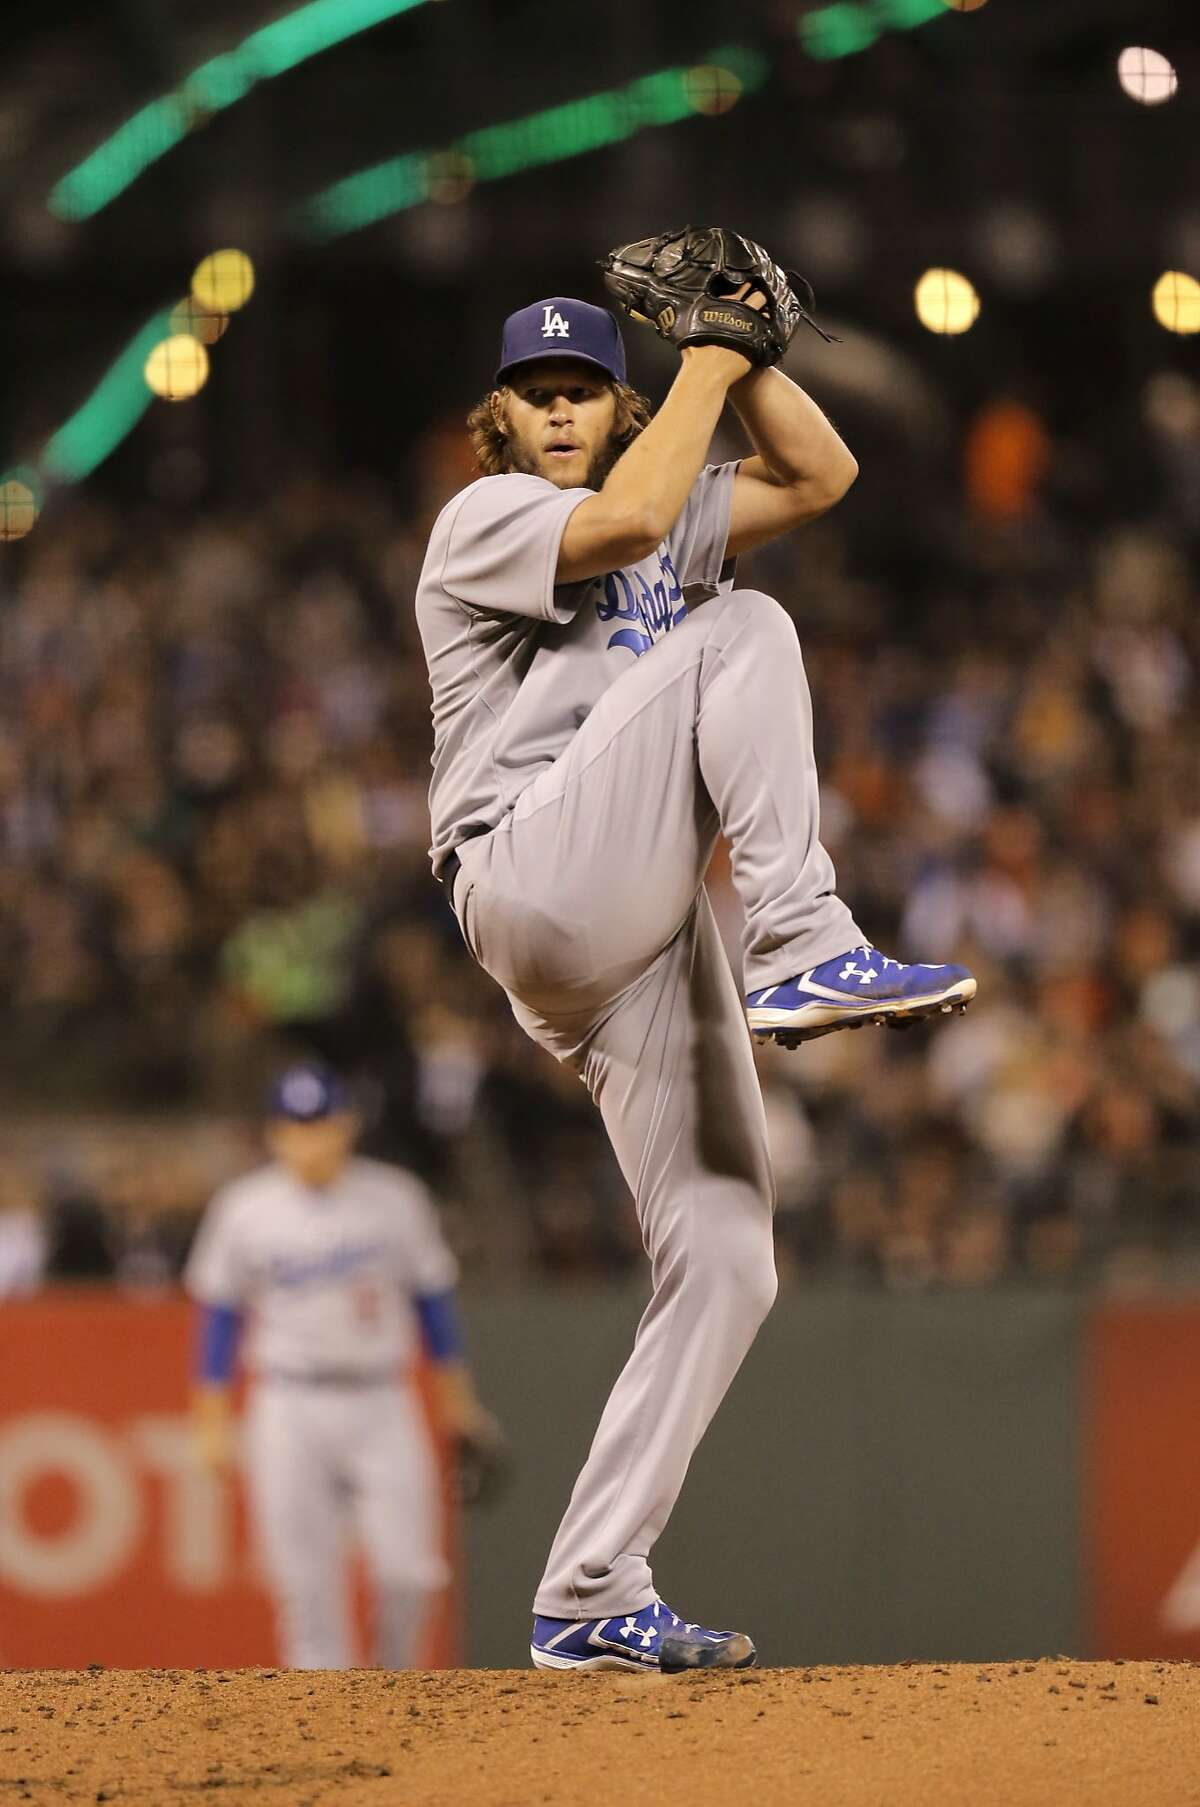 Dodgers' starting pitcher Clayton Kershaw throws in the first inning, as the Giants take on the Dodgers at AT&T Park in San Francisco in Sept. 2015.